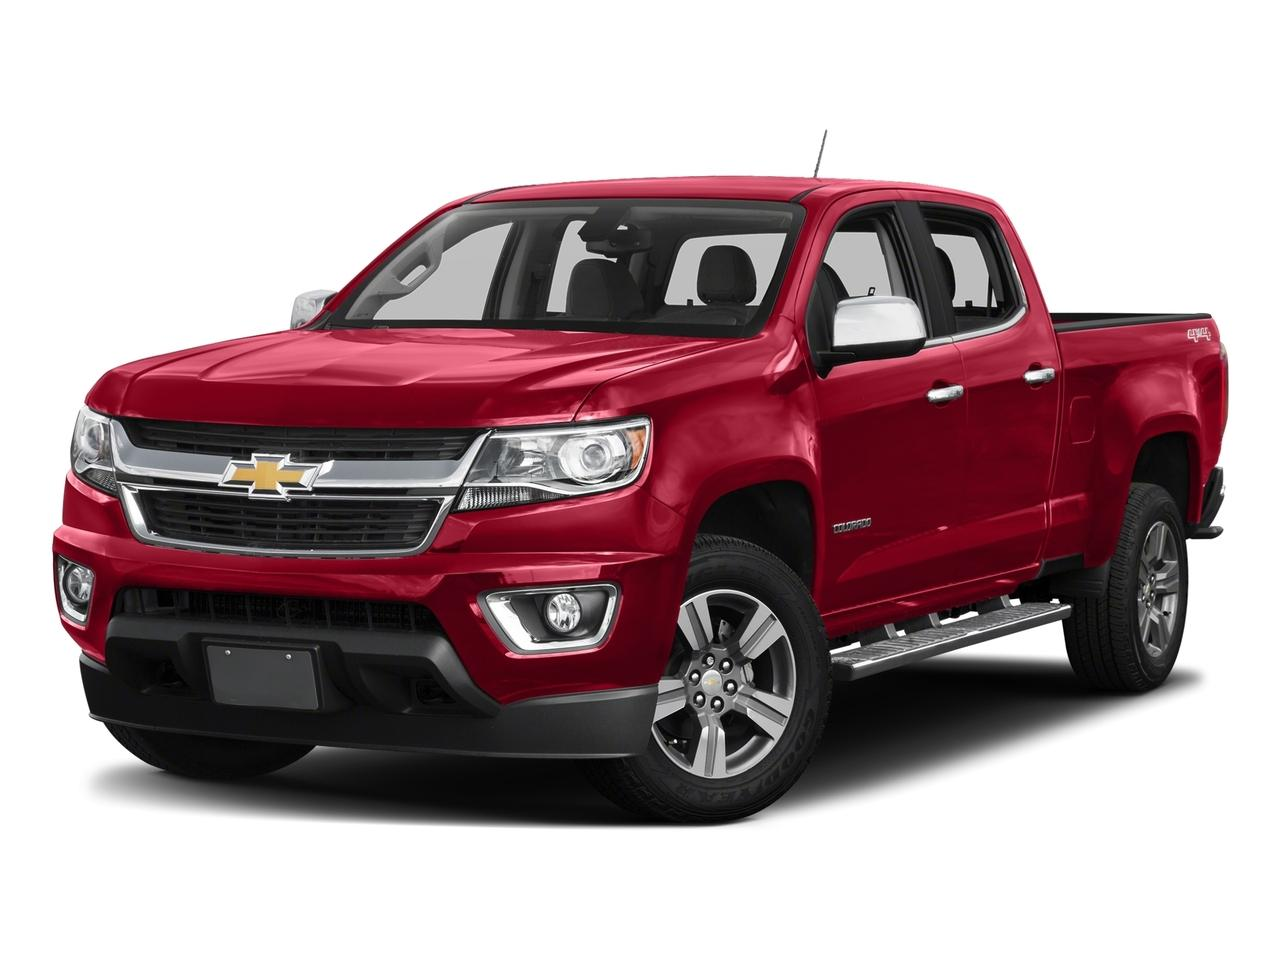 2018 Chevrolet Colorado Vehicle Photo in Tulsa, OK 74133